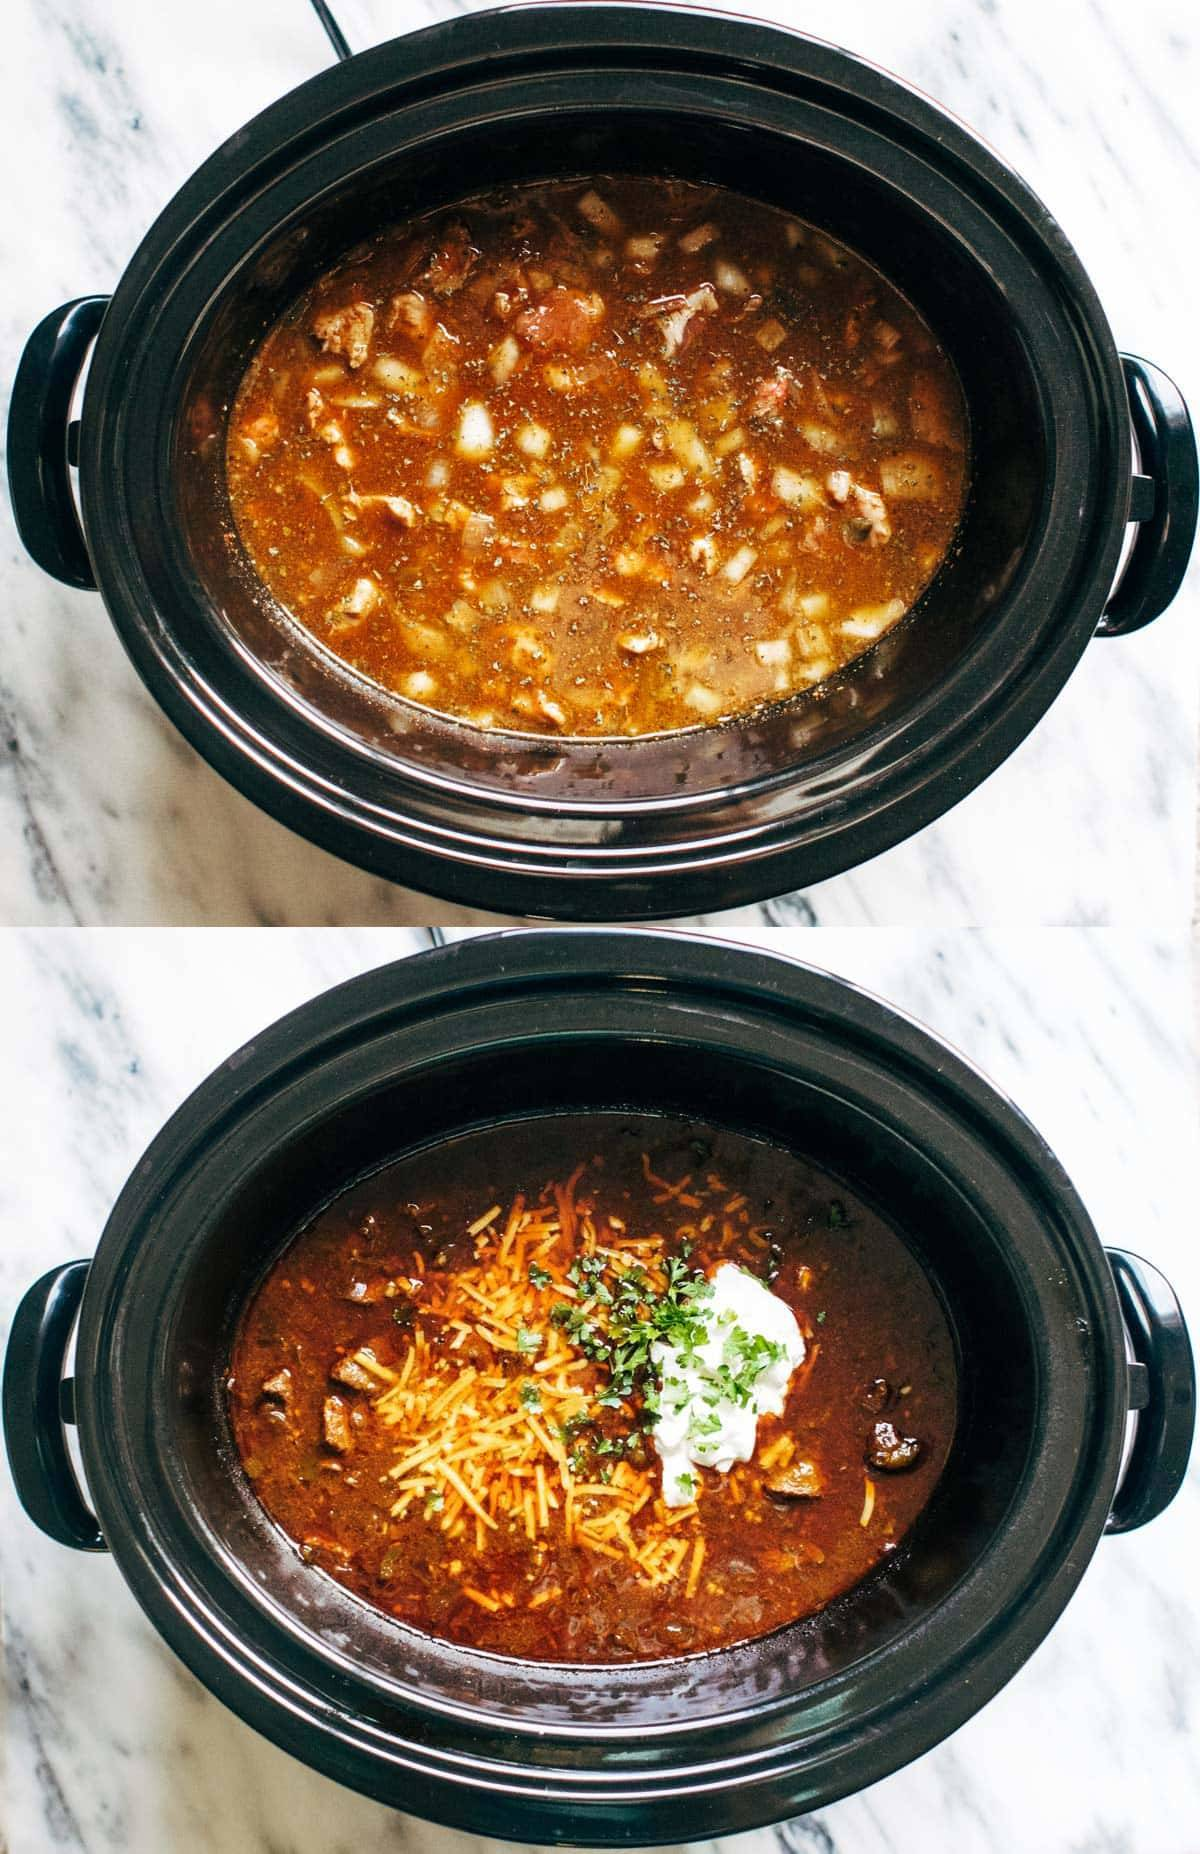 Chili in a slow cooker.